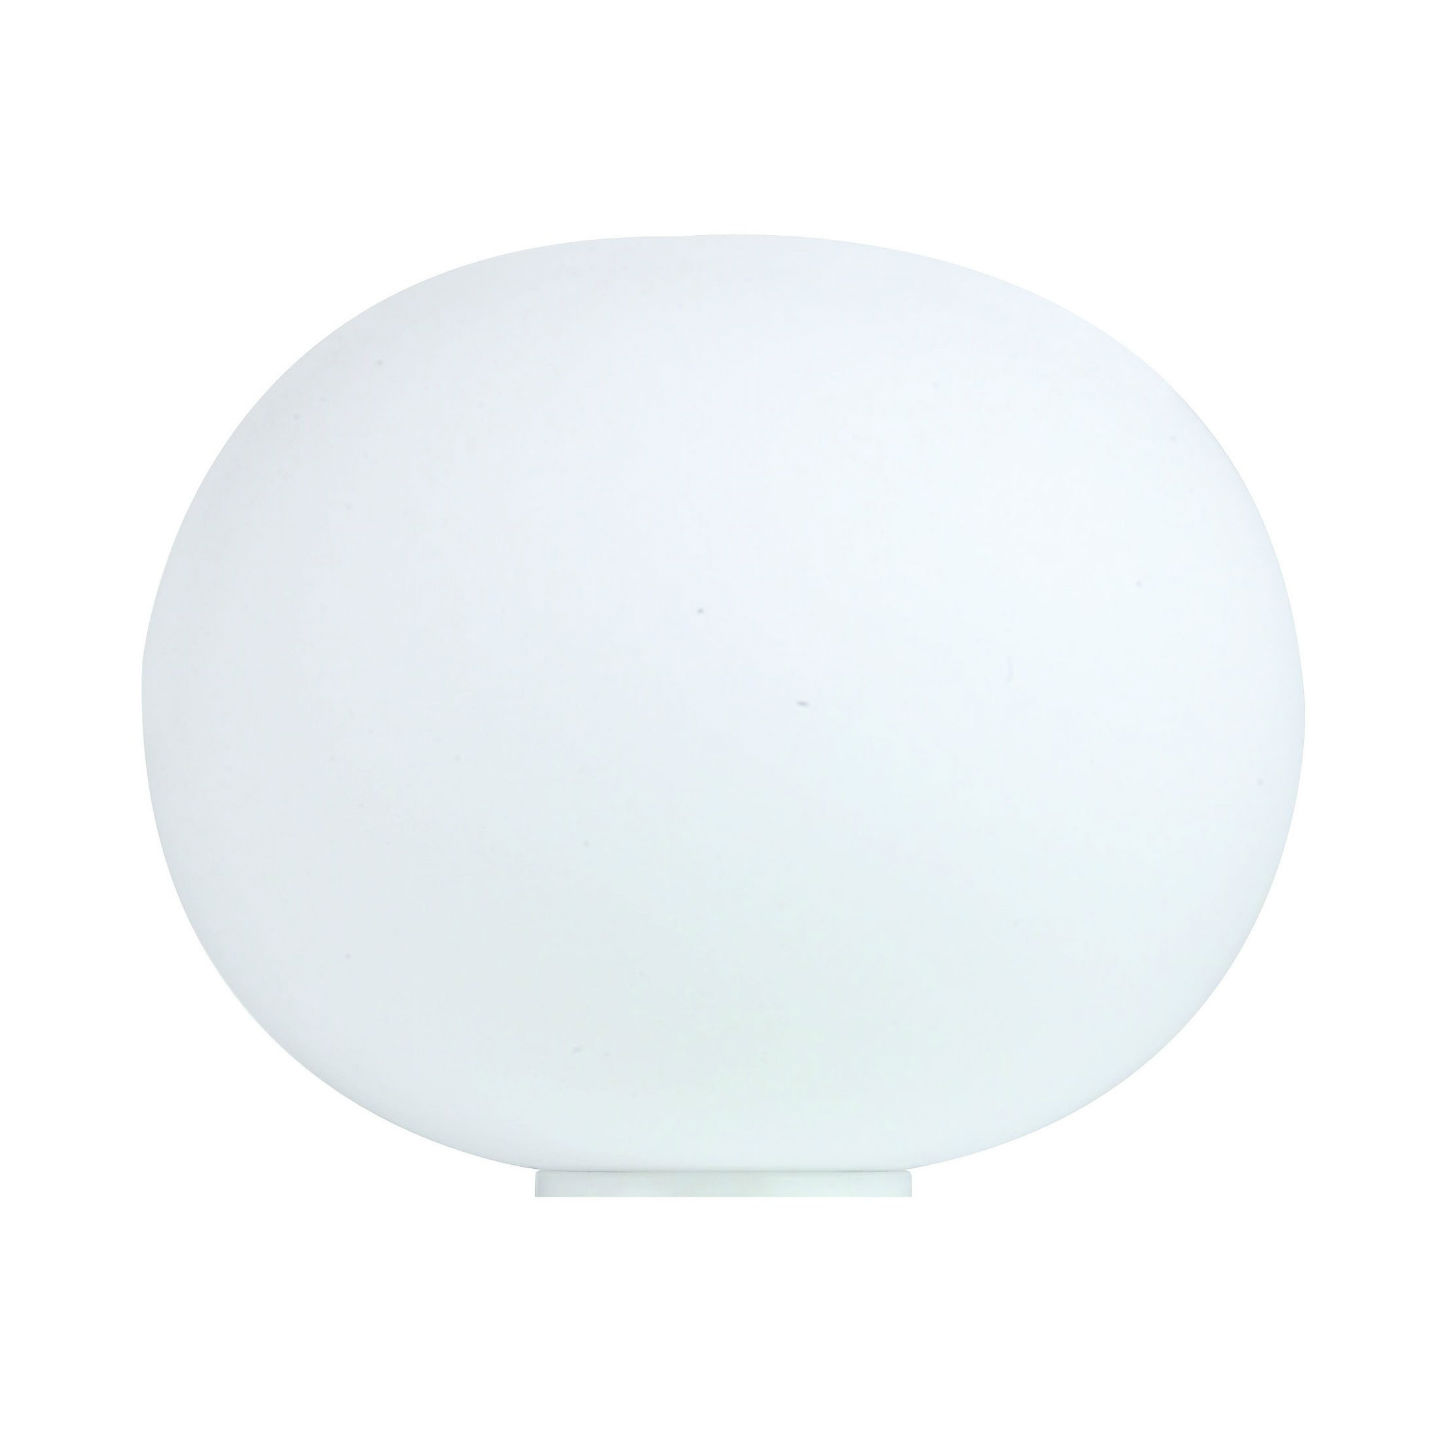 Glo Ball Mini T Lampe de table 11,2cm G9 20W - blanc opale